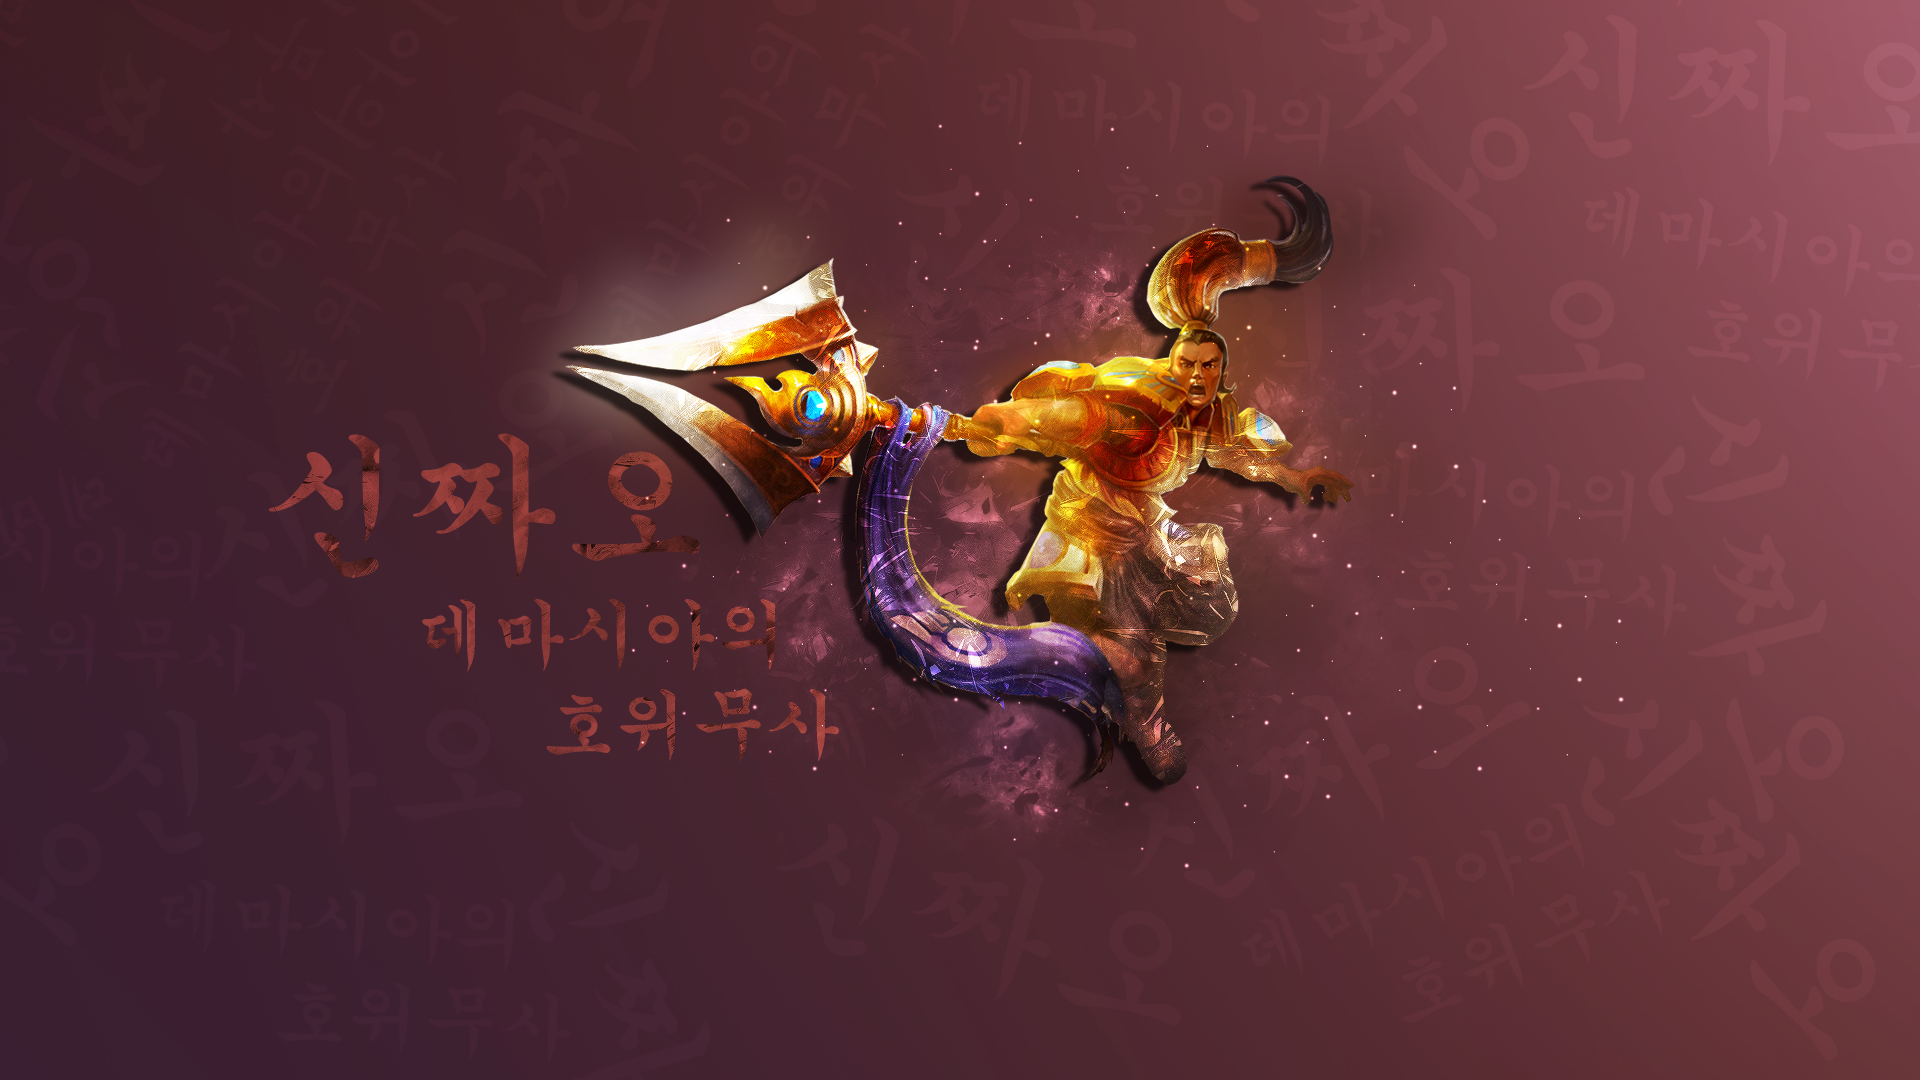 Xin zhao lolwallpapers xin zhao wallpaper voltagebd Image collections